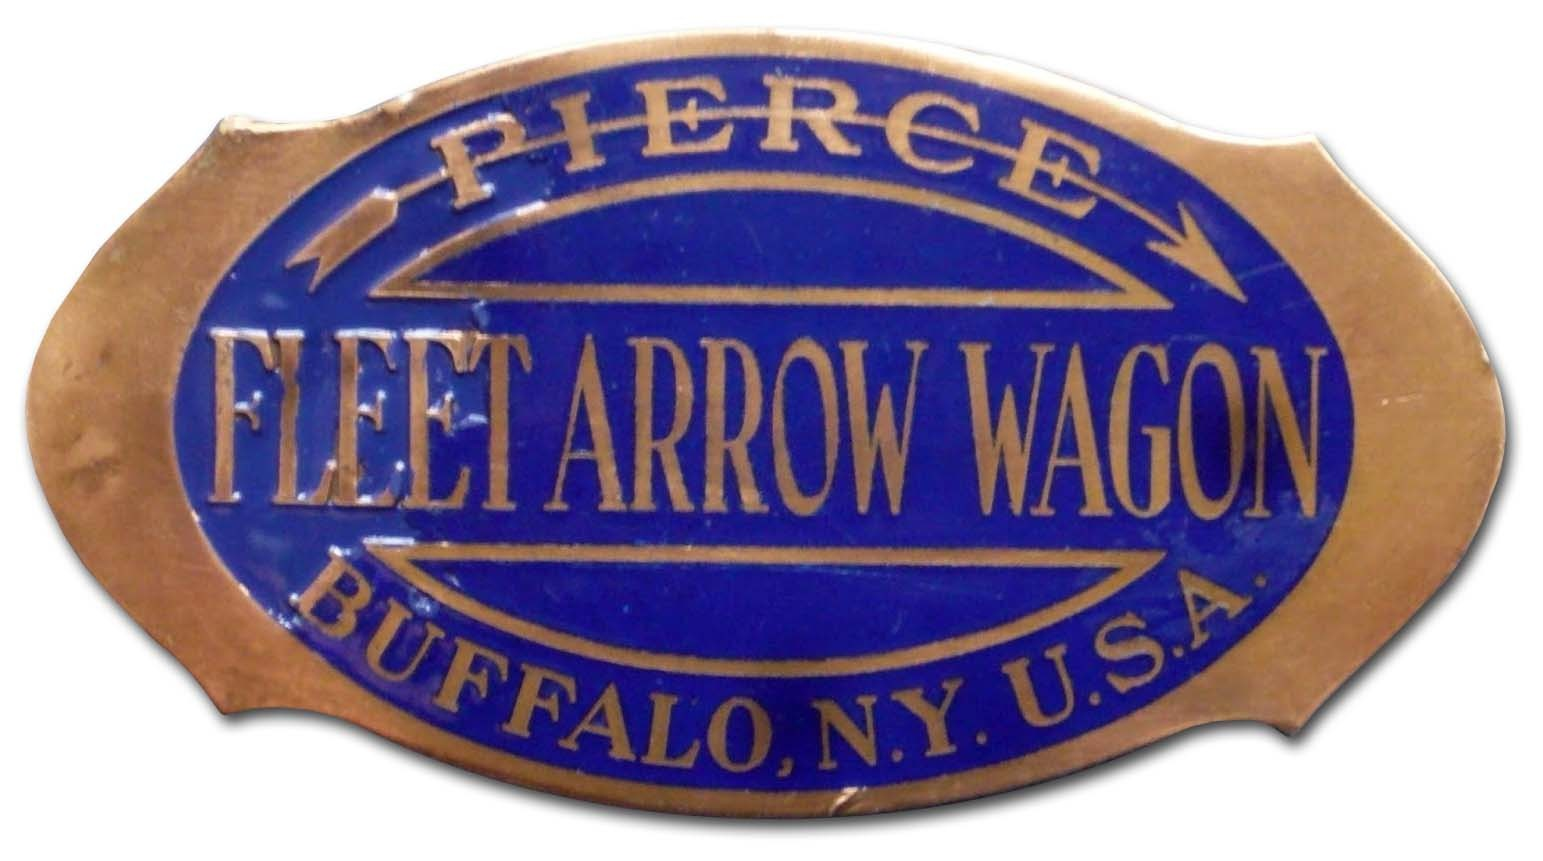 1927-1930. Pierce-Arrow Fleet Wagon (truck grill emblem)